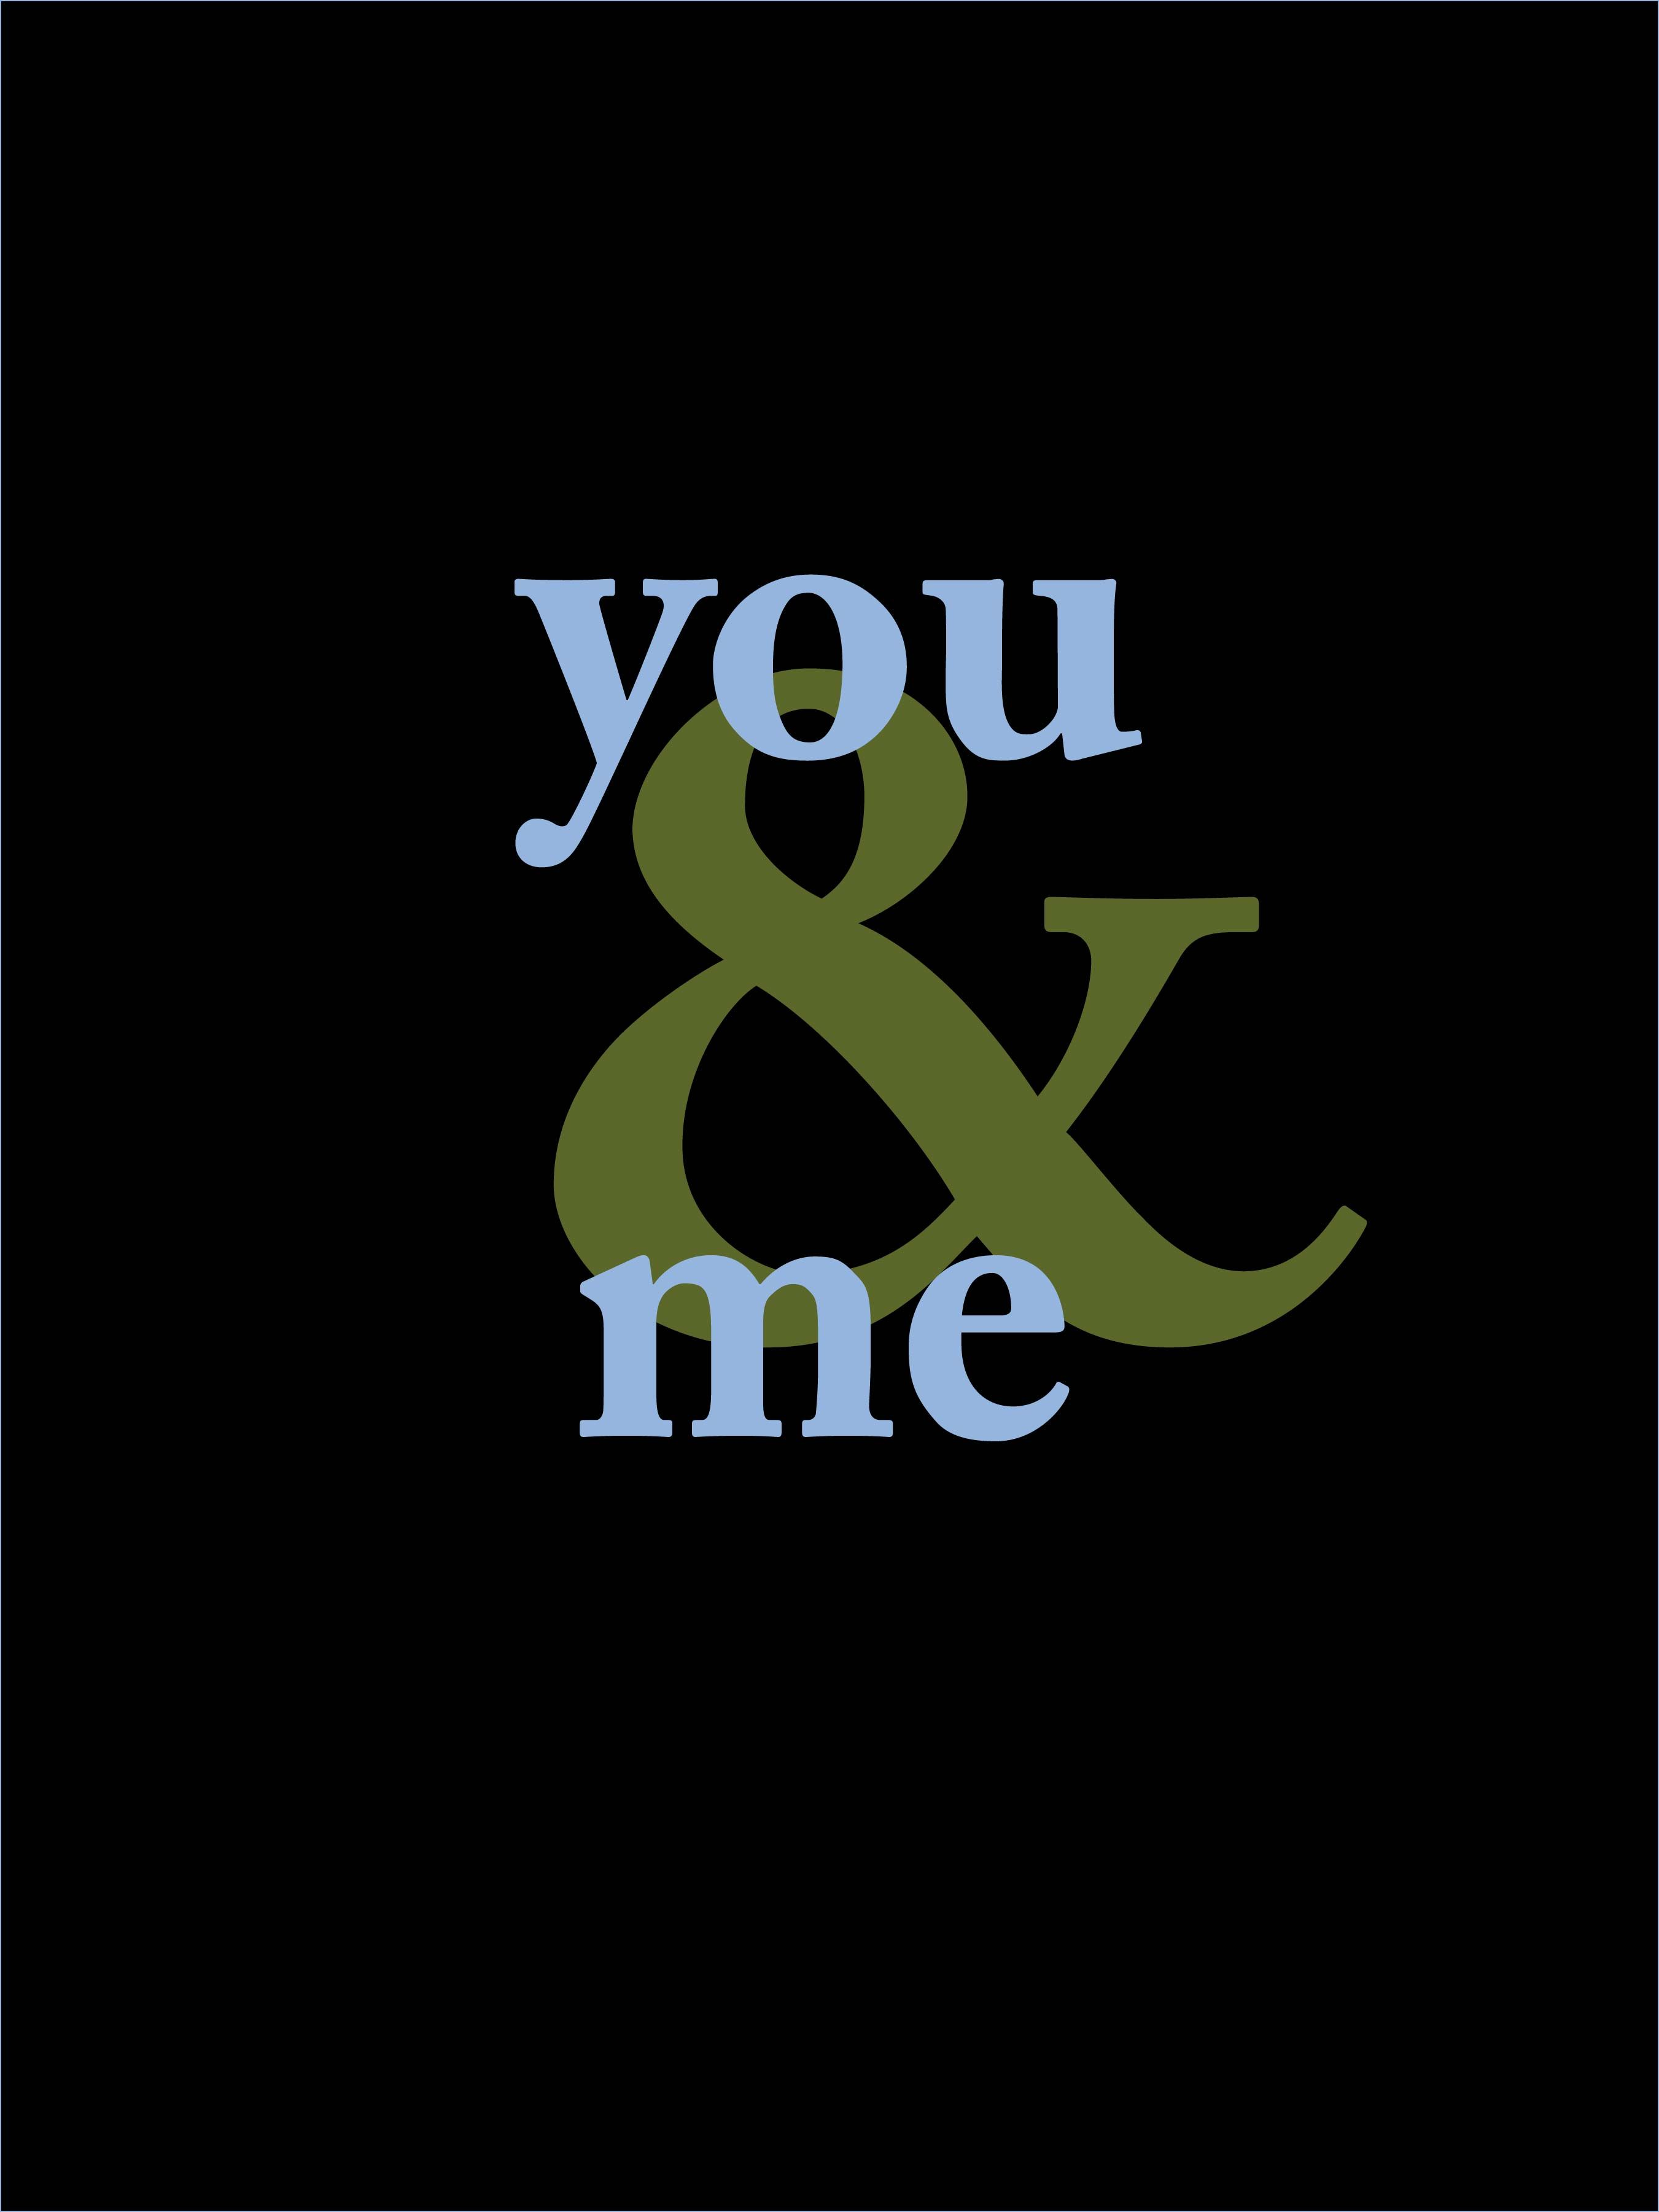 You and Me                                             by Velásquez©2012